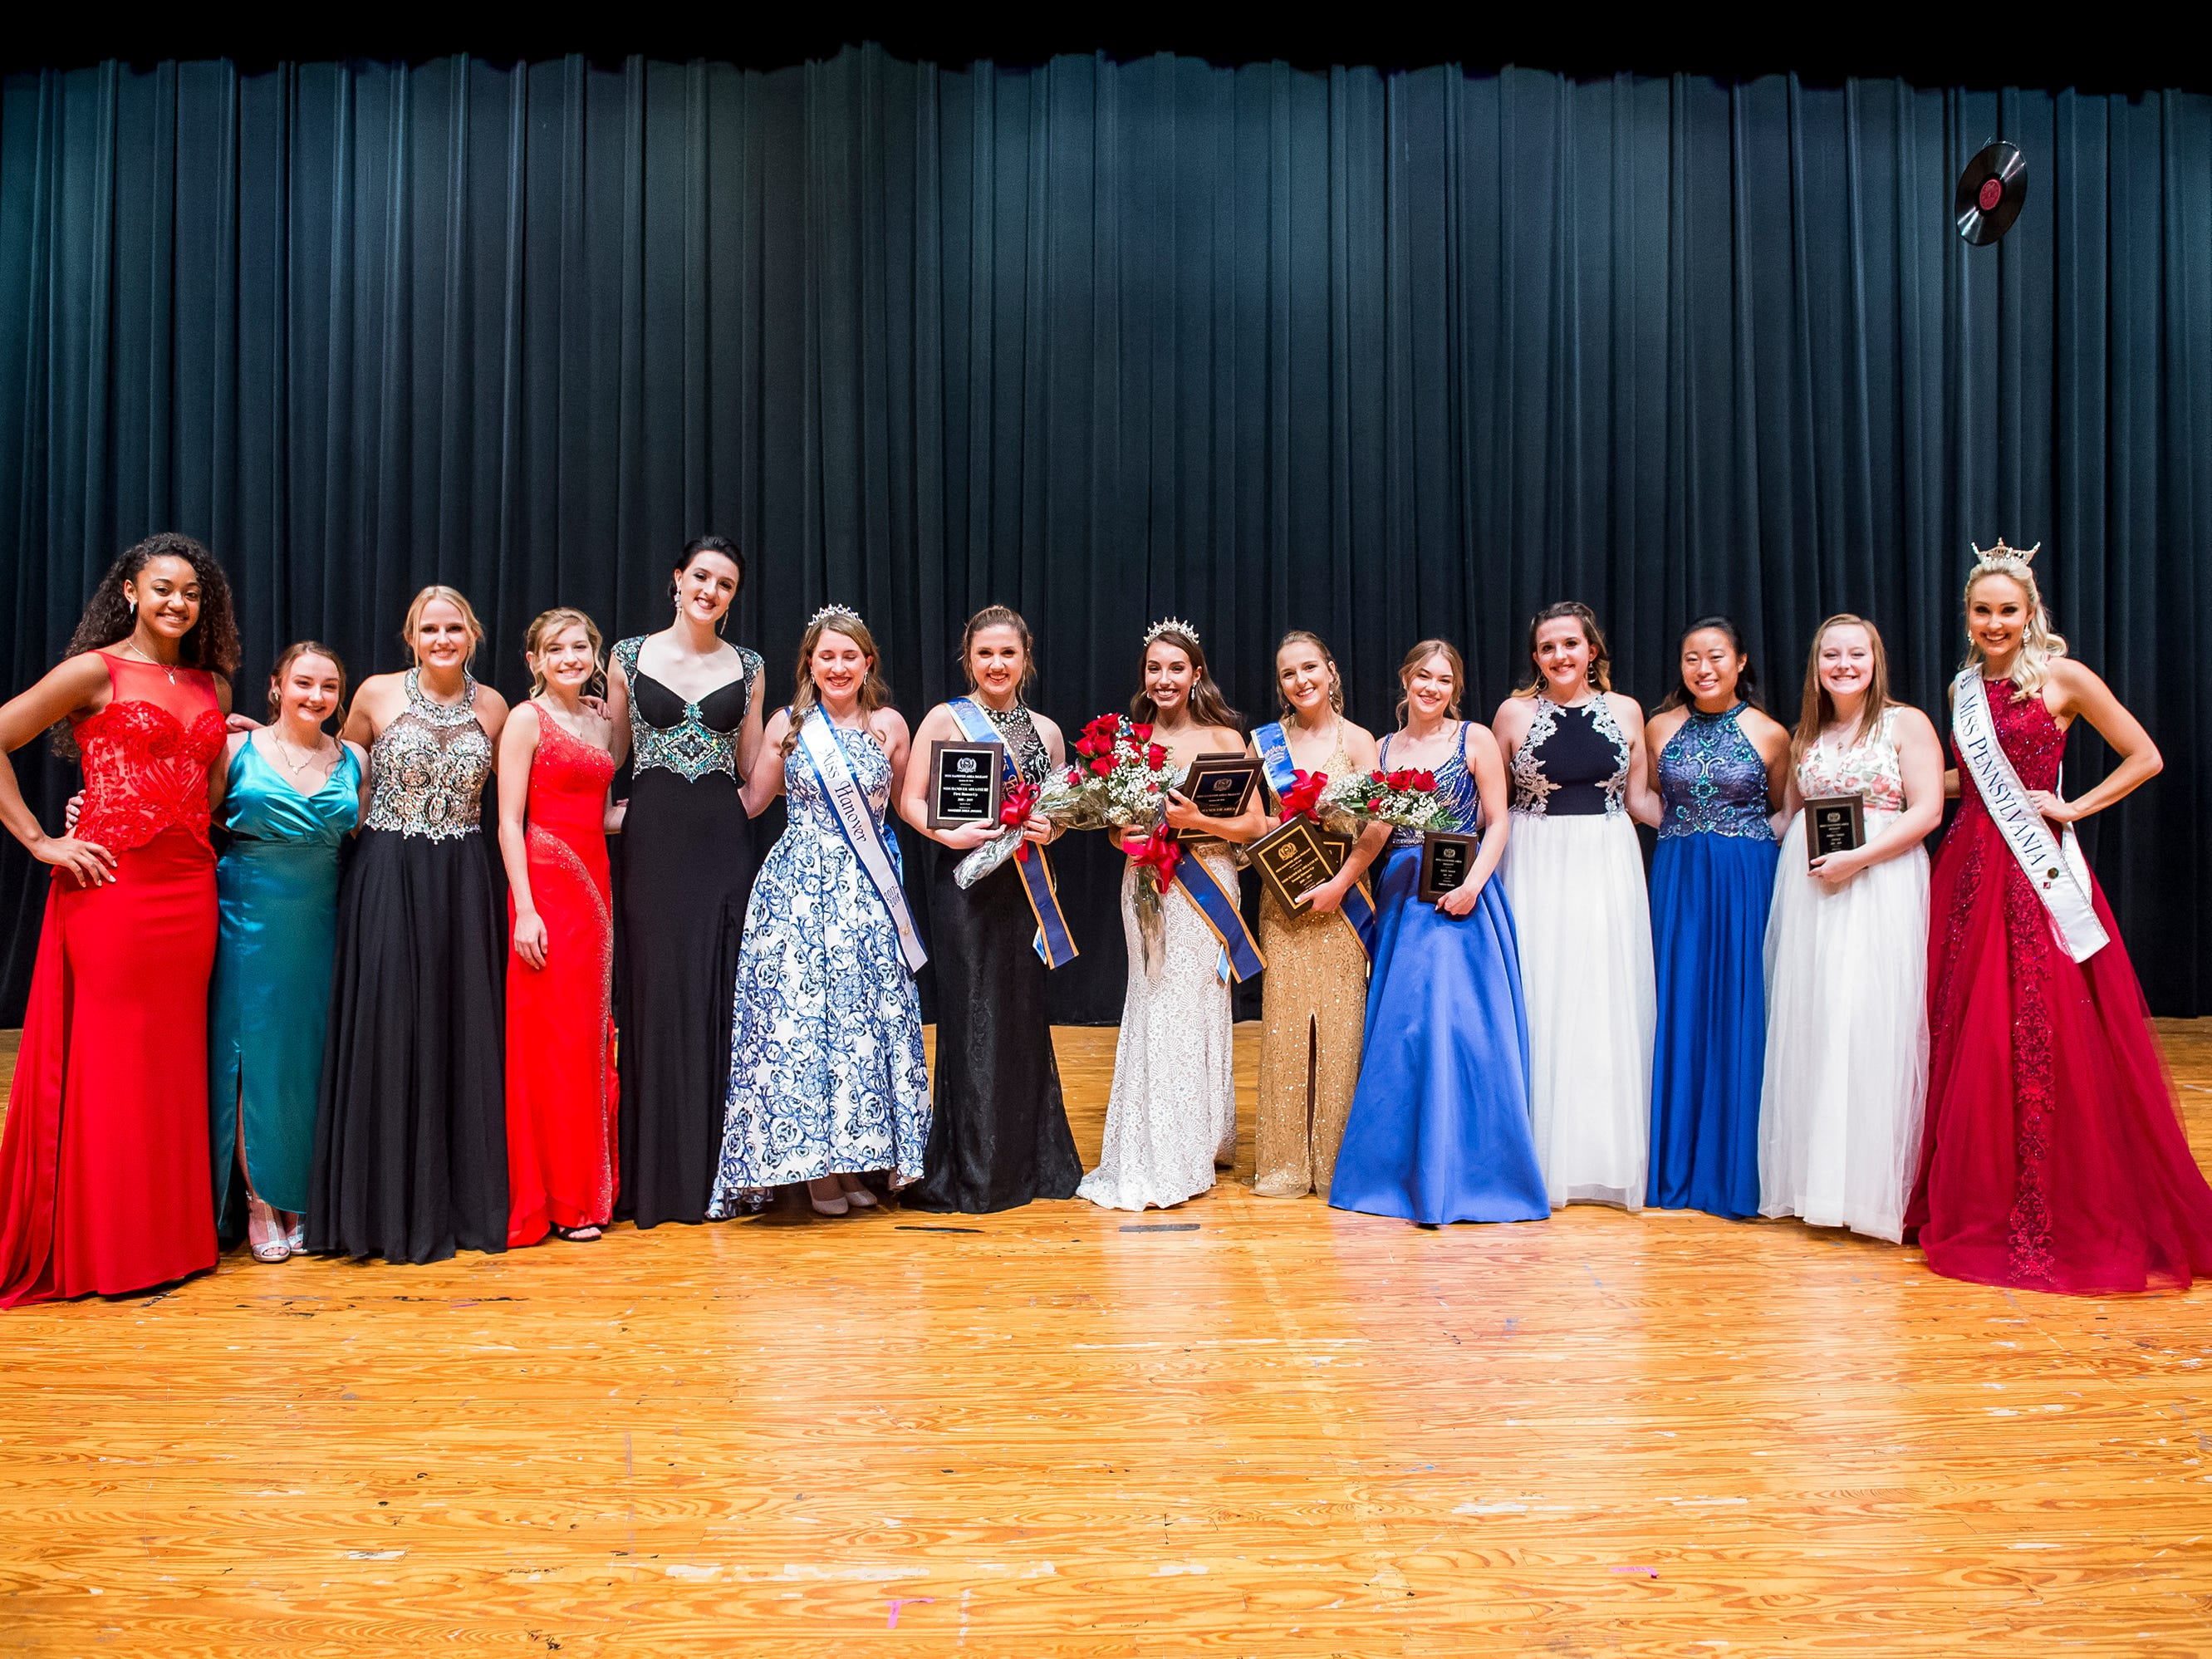 The 12 Miss Hanover Area contestants pose for a photo along with Miss Pennsylvania, Kayla Repasky, and Miss Hanover '17-'18, Marley Bradner, following the 50th Miss Hanover Area pageant at New Oxford High School on Monday, October 22, 2018.